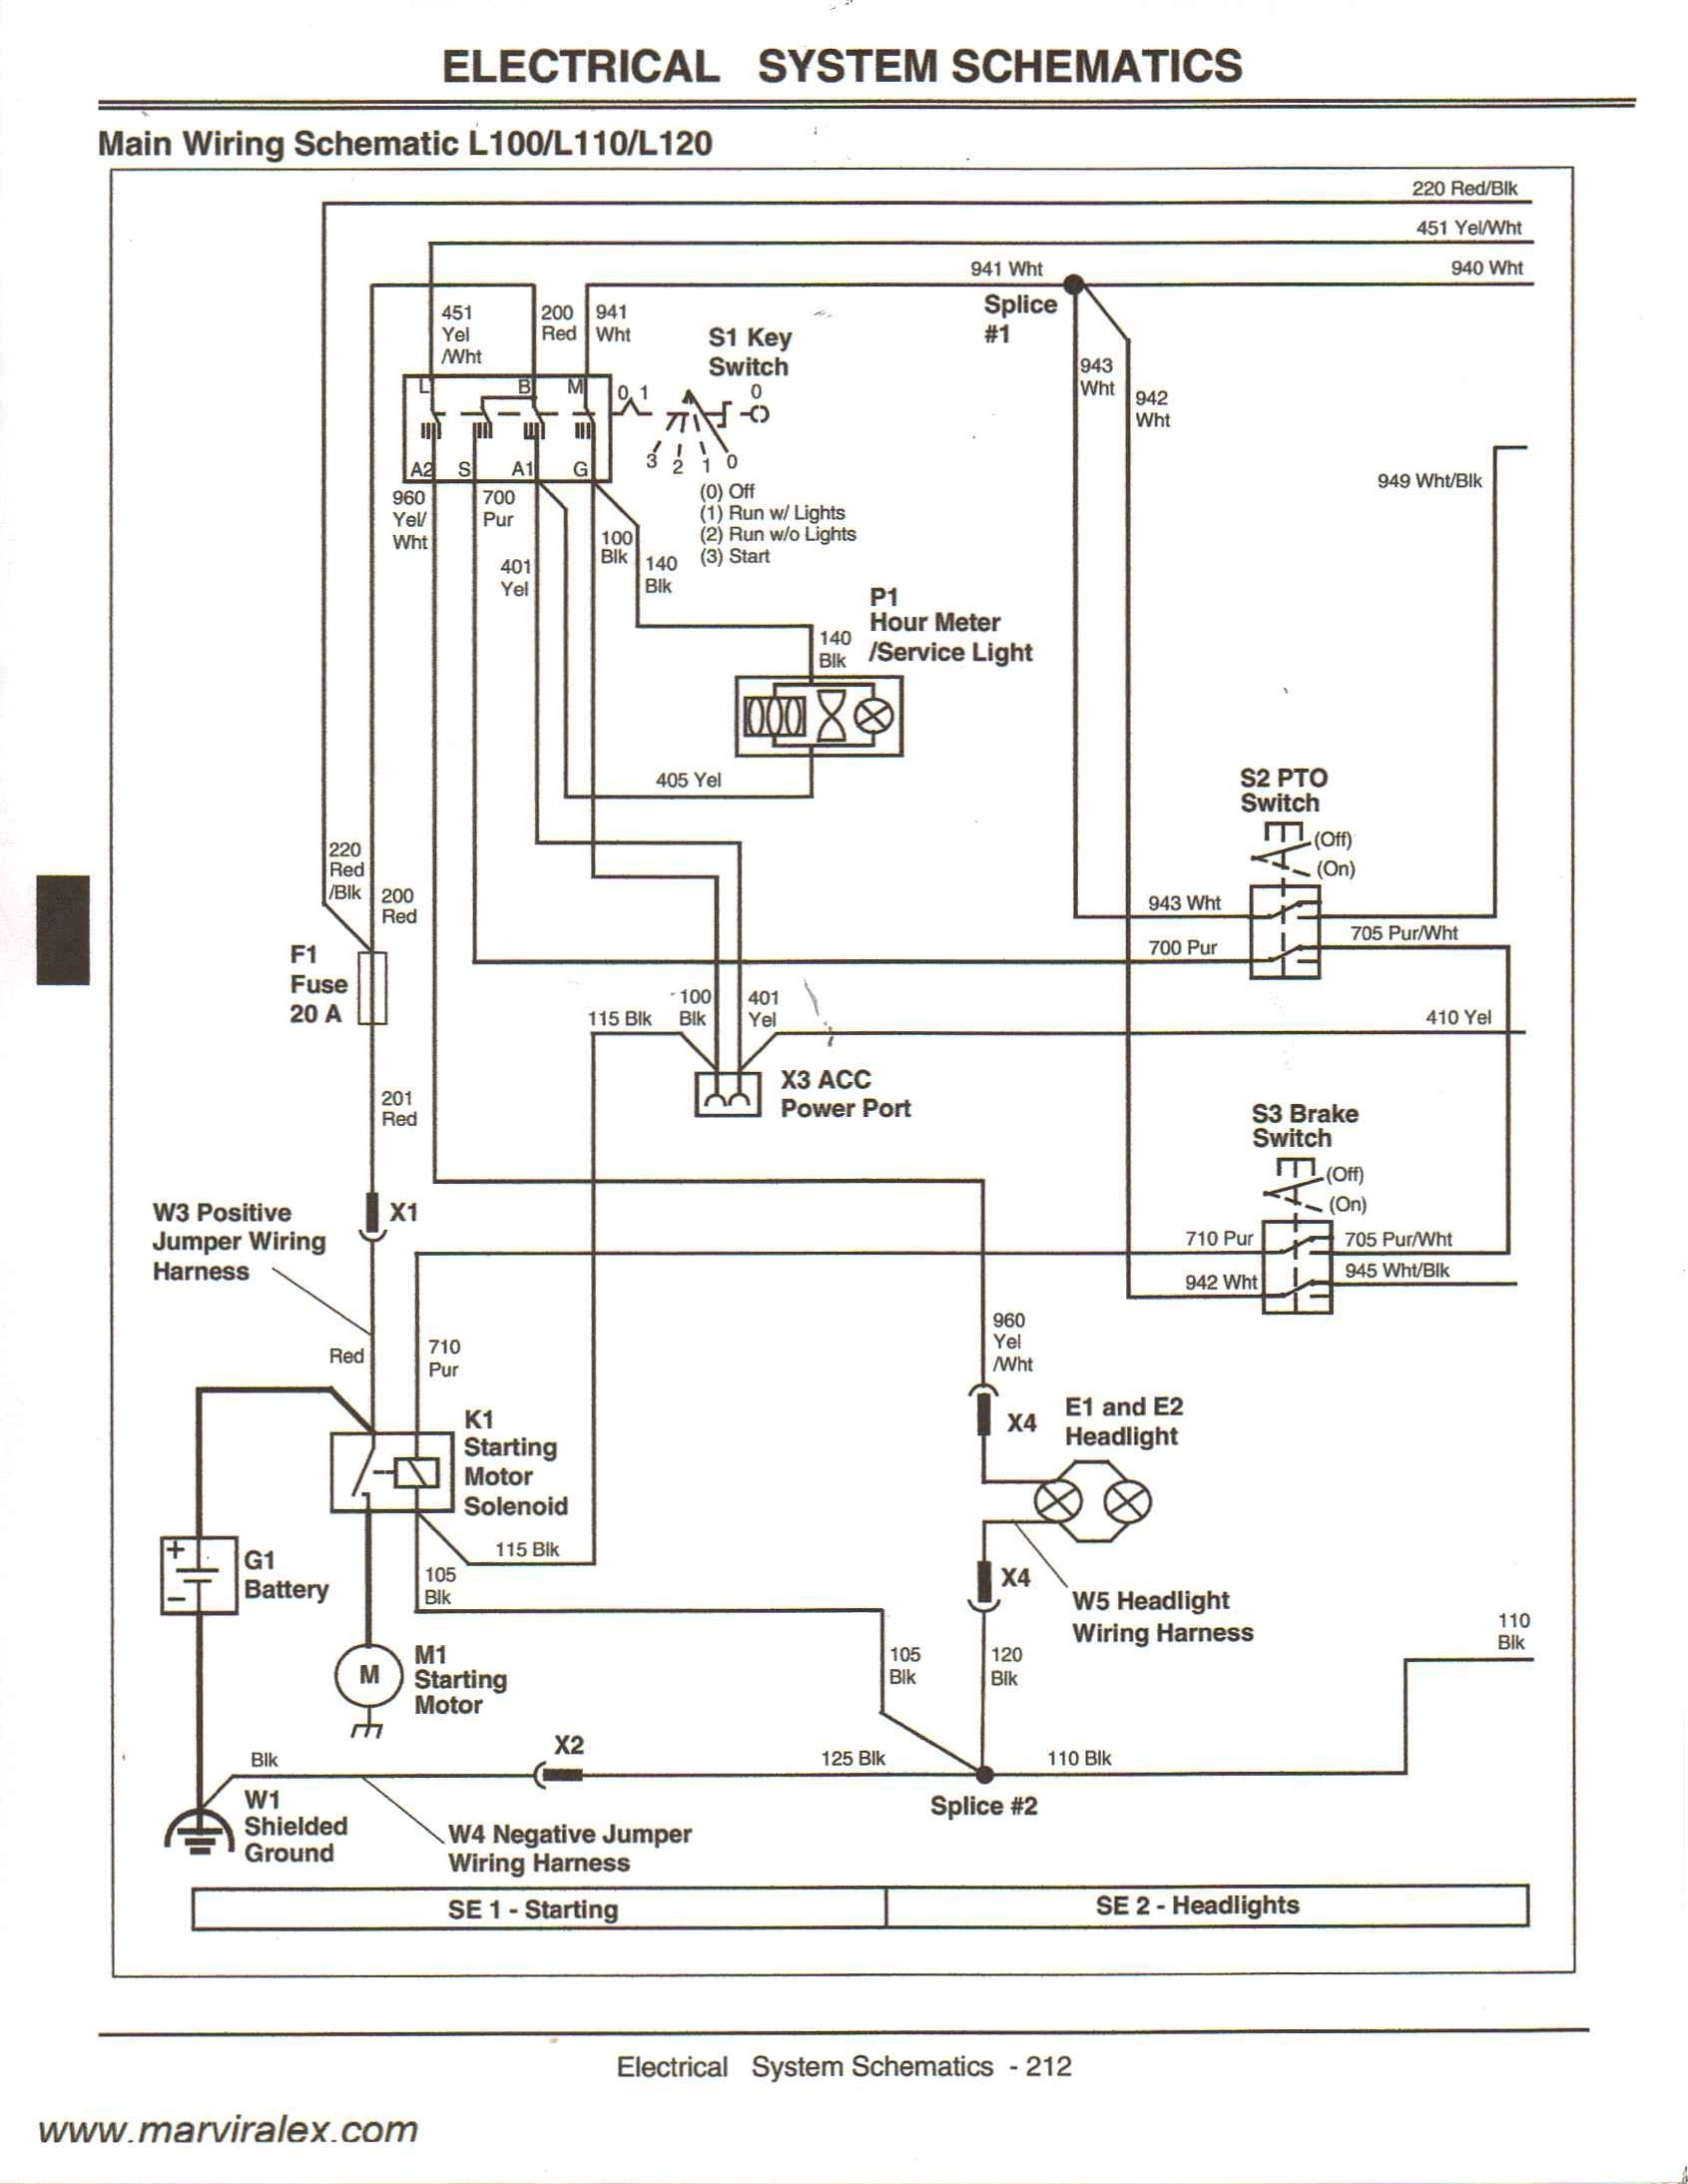 john deere electrical wiring diagrams john deere gator ignition switch wiring diagram | free ... john deere ac wiring diagrams #5